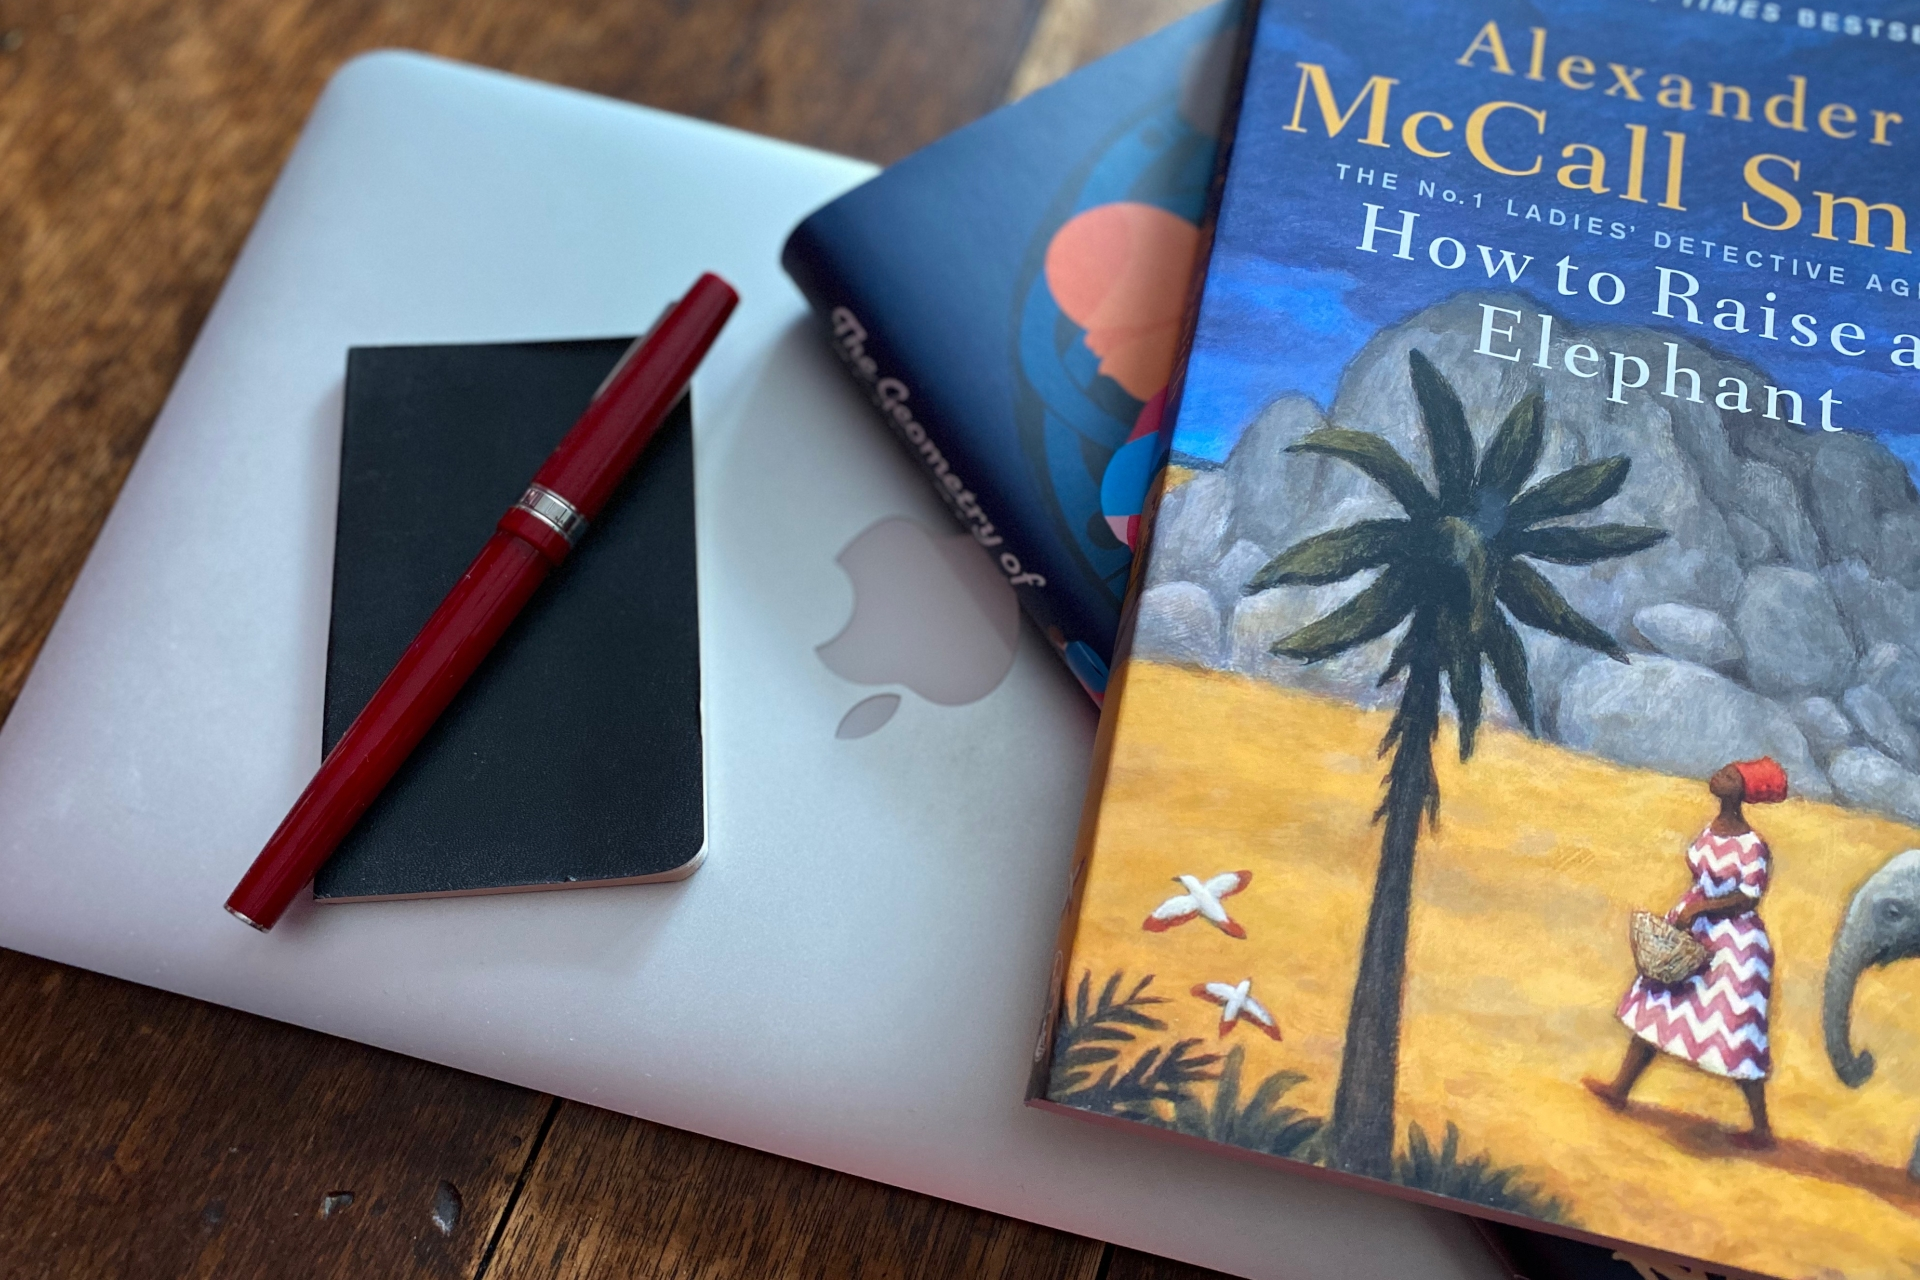 Book chat with Alexander McCall Smith